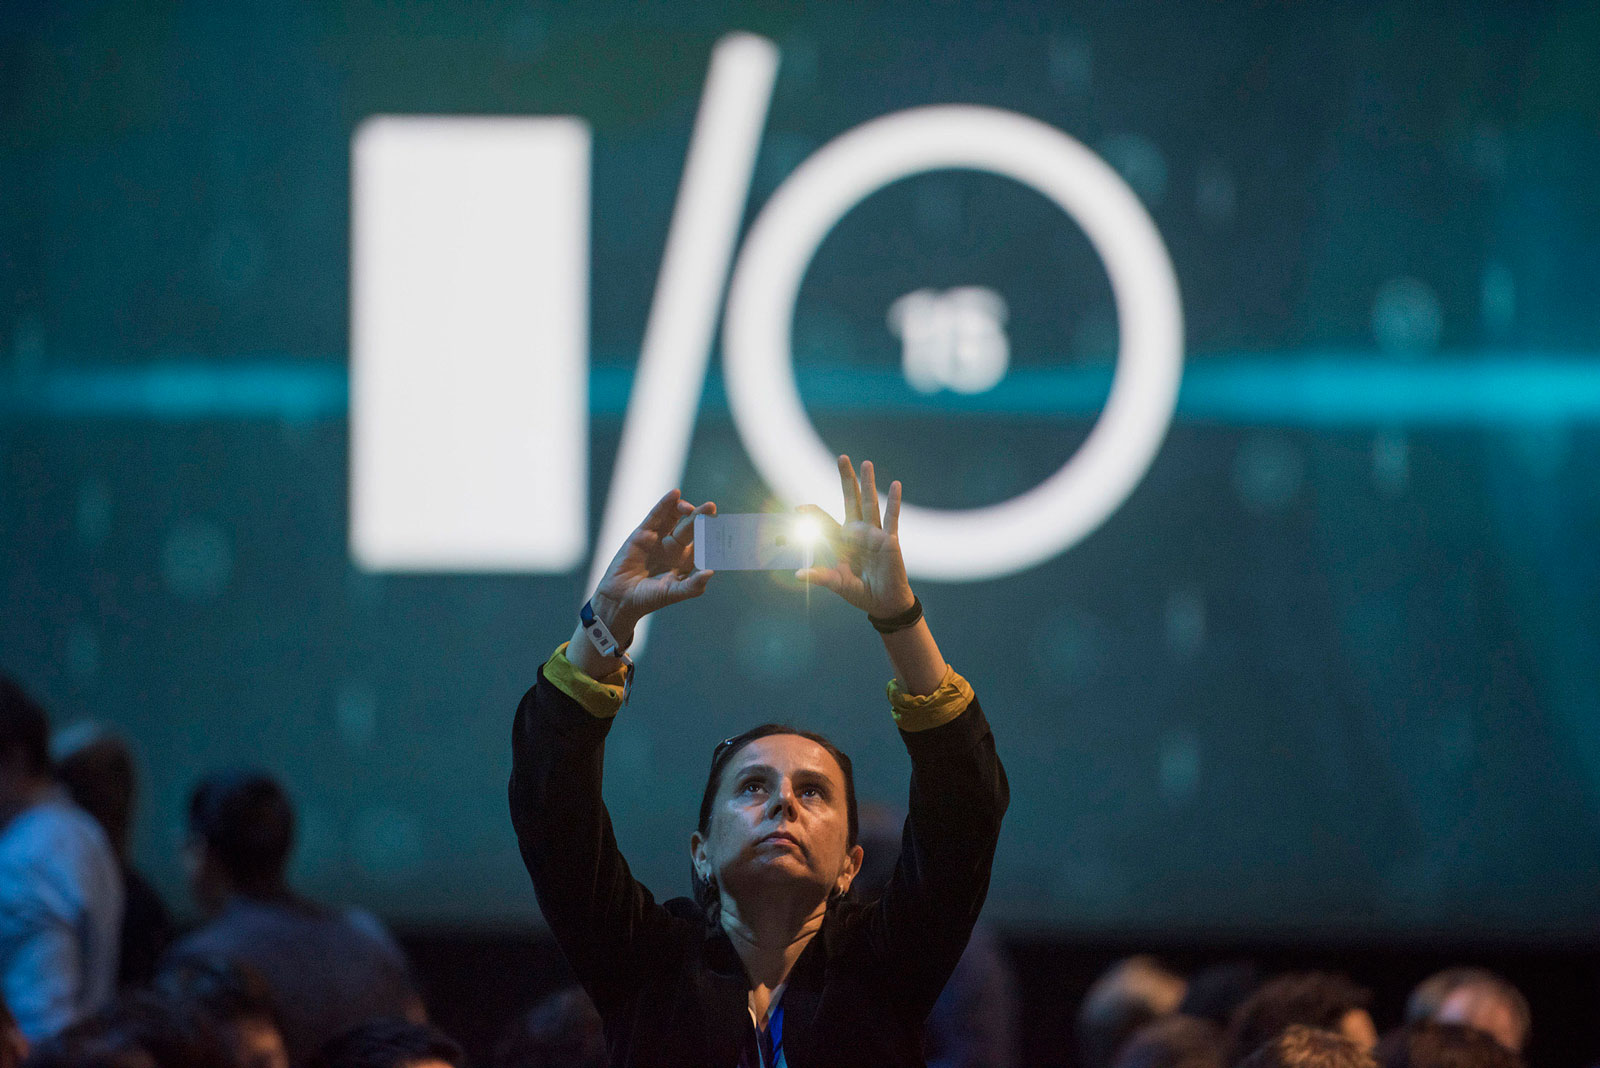 An attendee takes a photograph before the start of the Google I/O annual developers conference in San Francisco